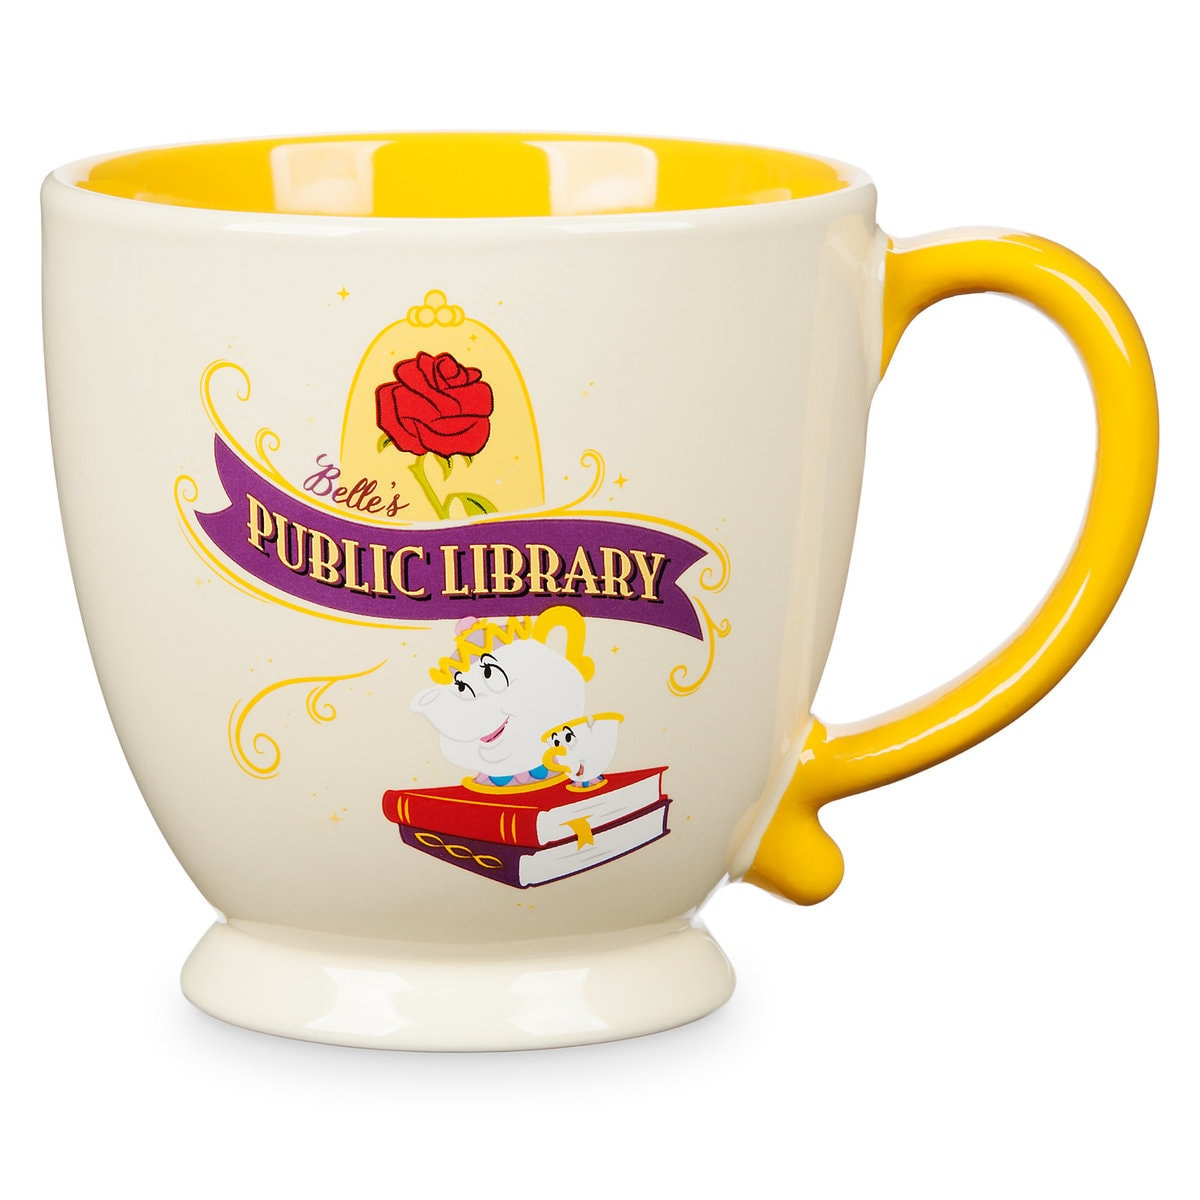 Image result for belles public library mug